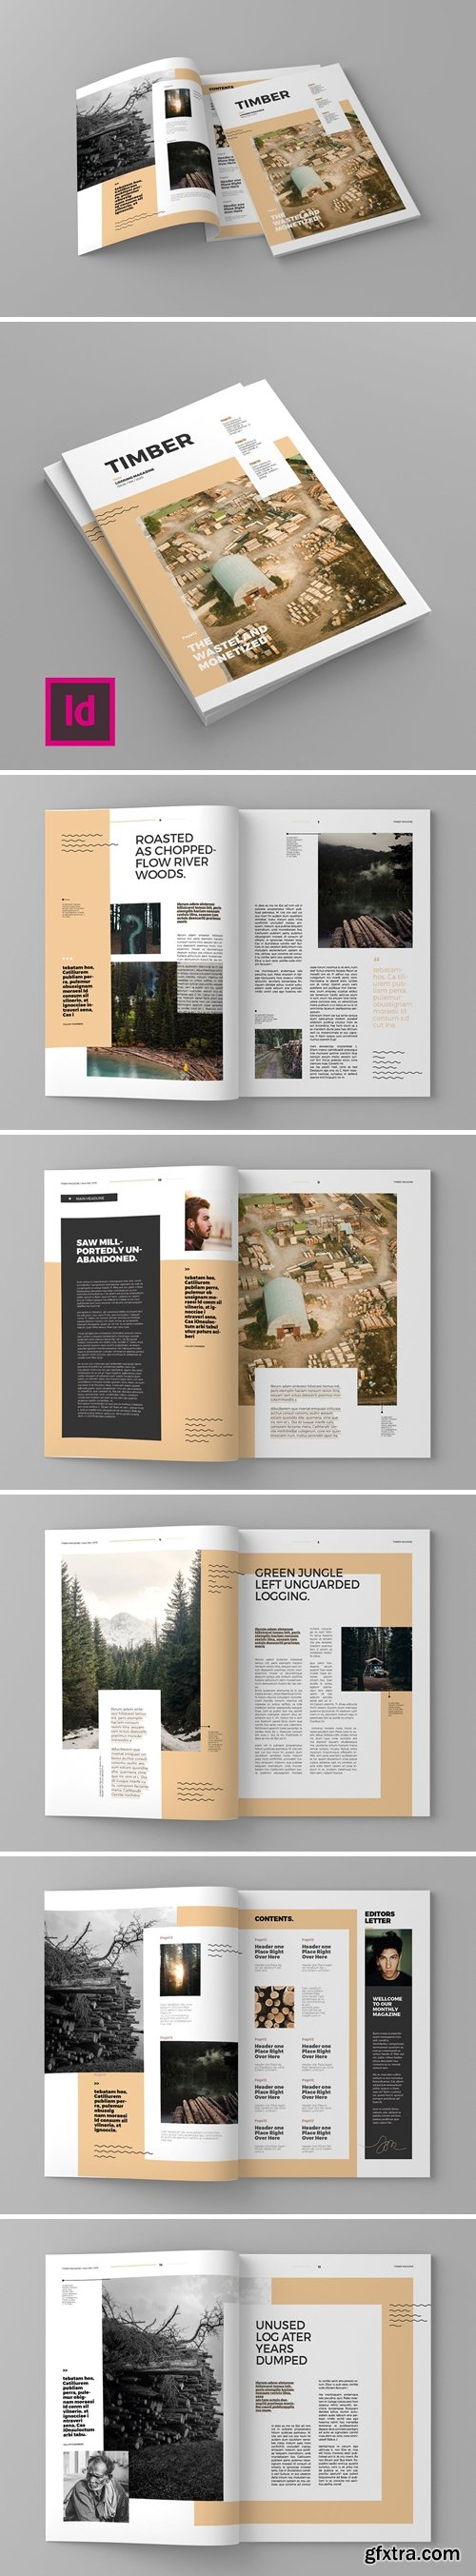 CM - Timber - Magazine Template 4365959